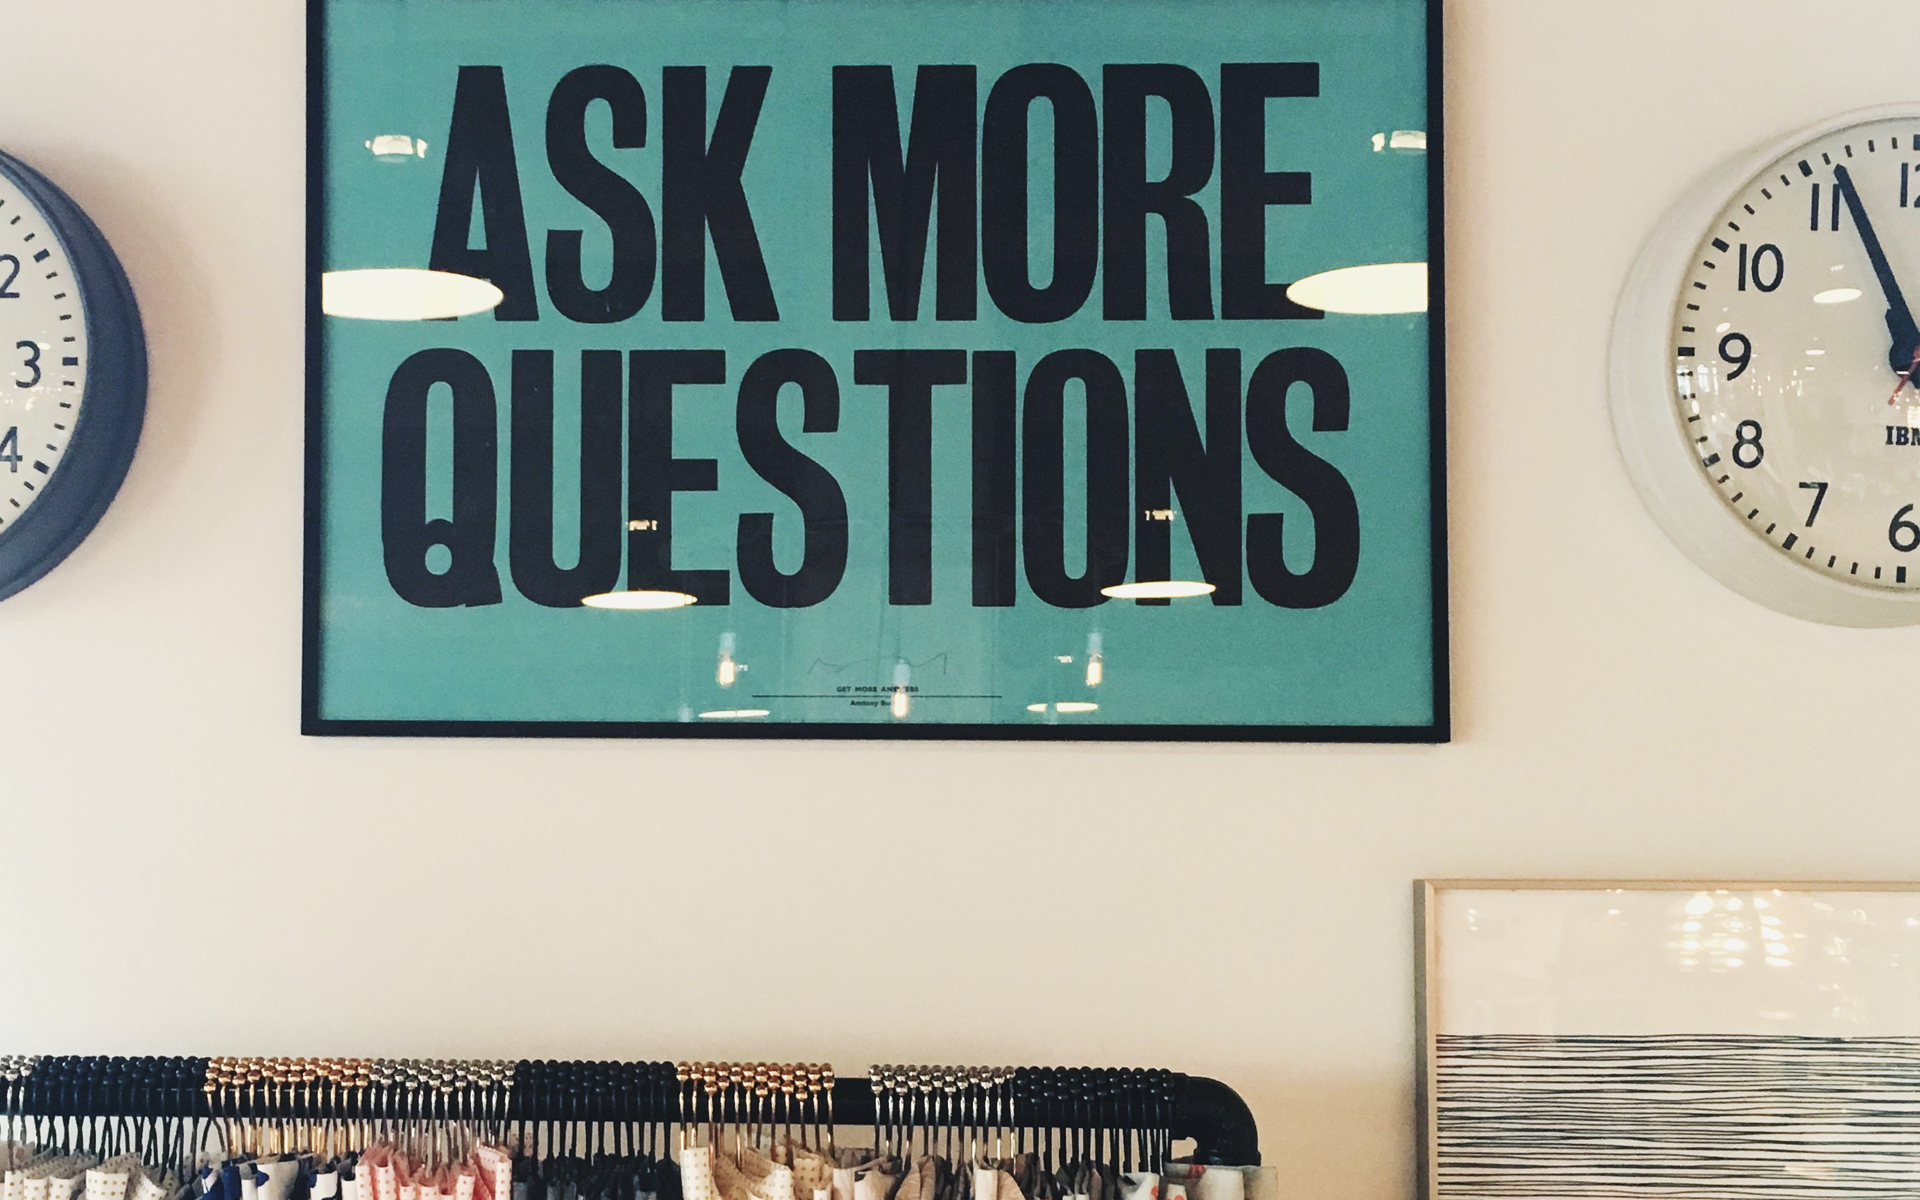 ask more questions.